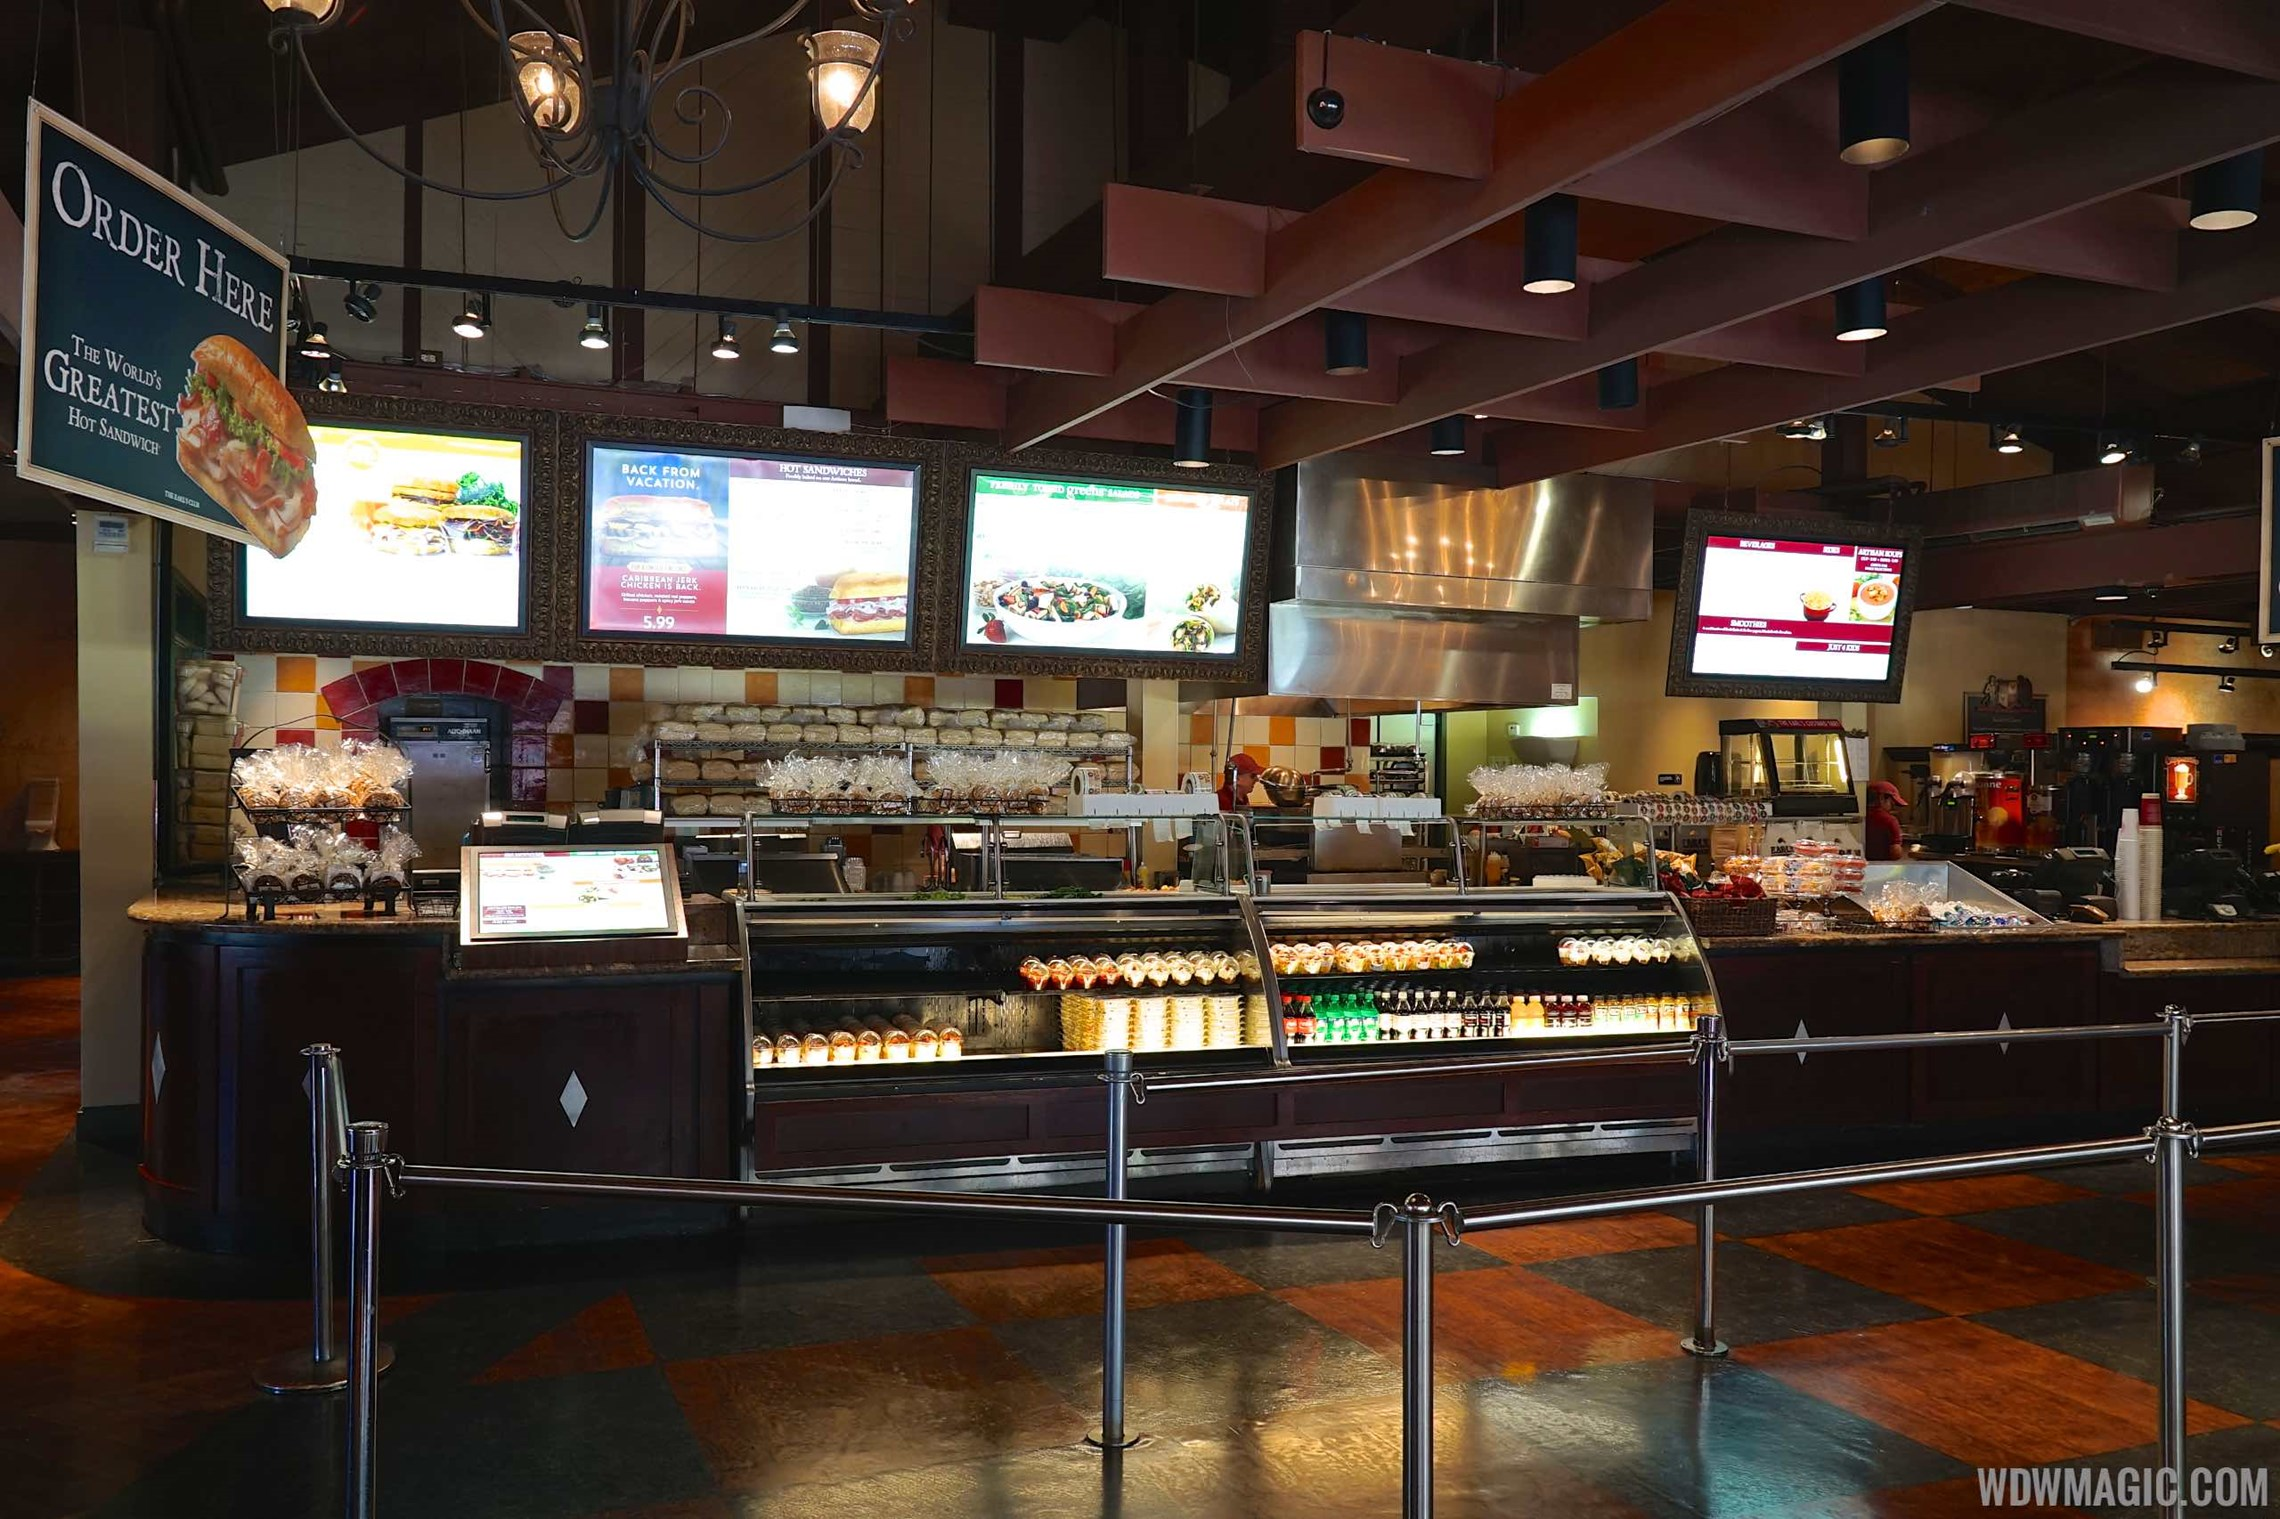 Earl of Sandwich overview